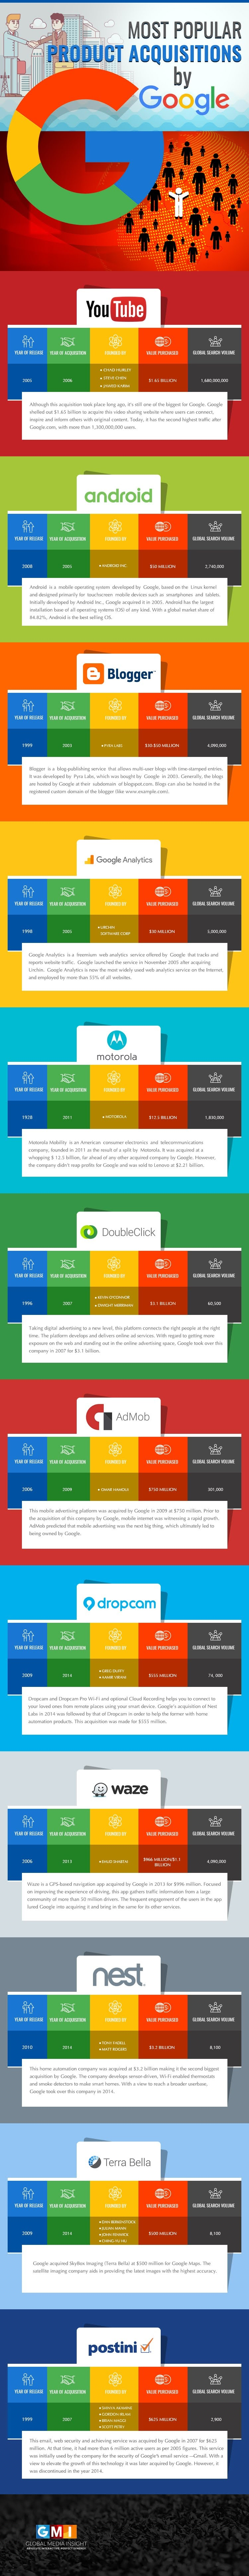 googles-12-most-popular-product-acquisitions-infographic